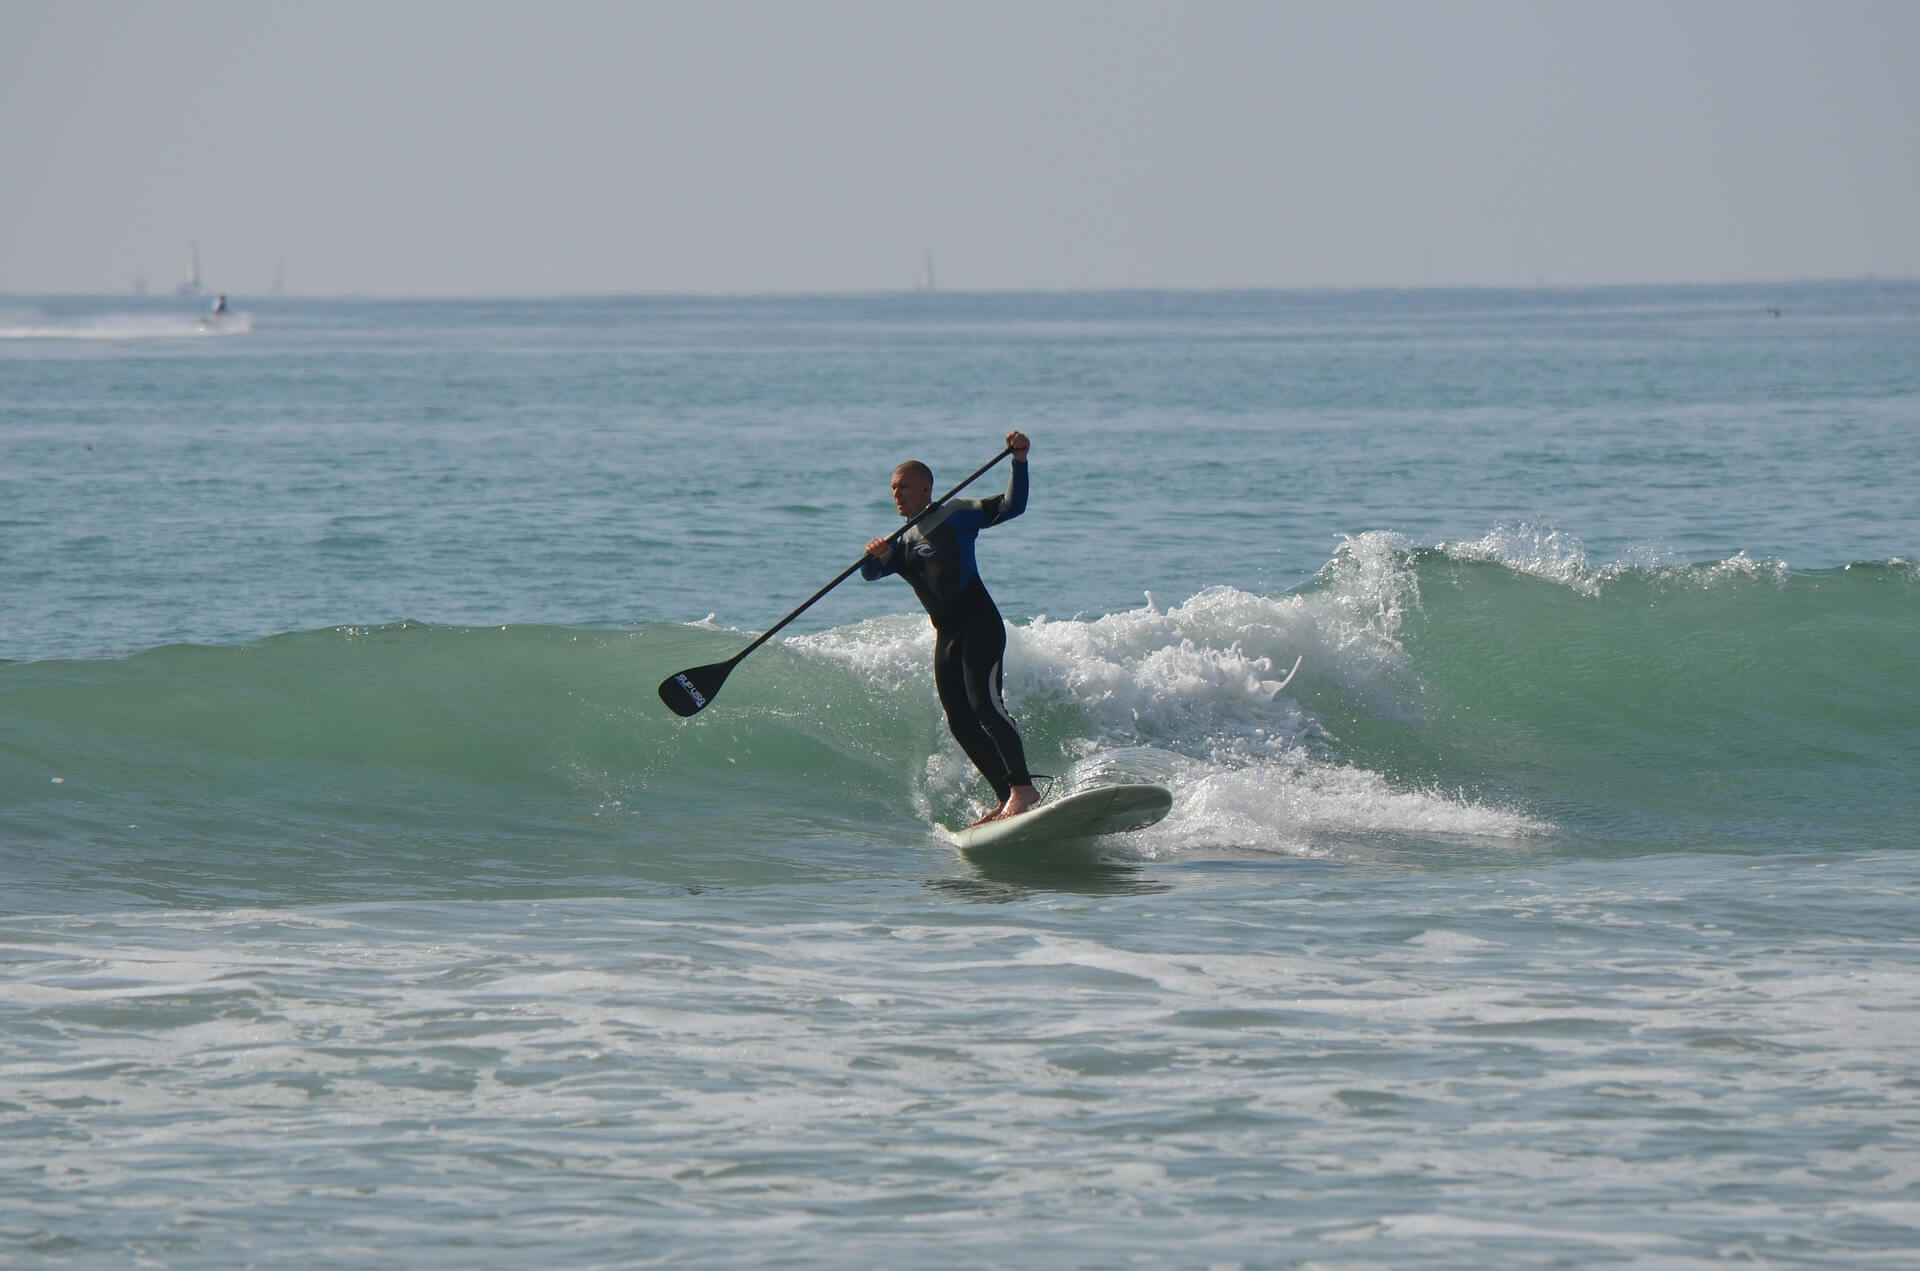 riding waves on a SUP board